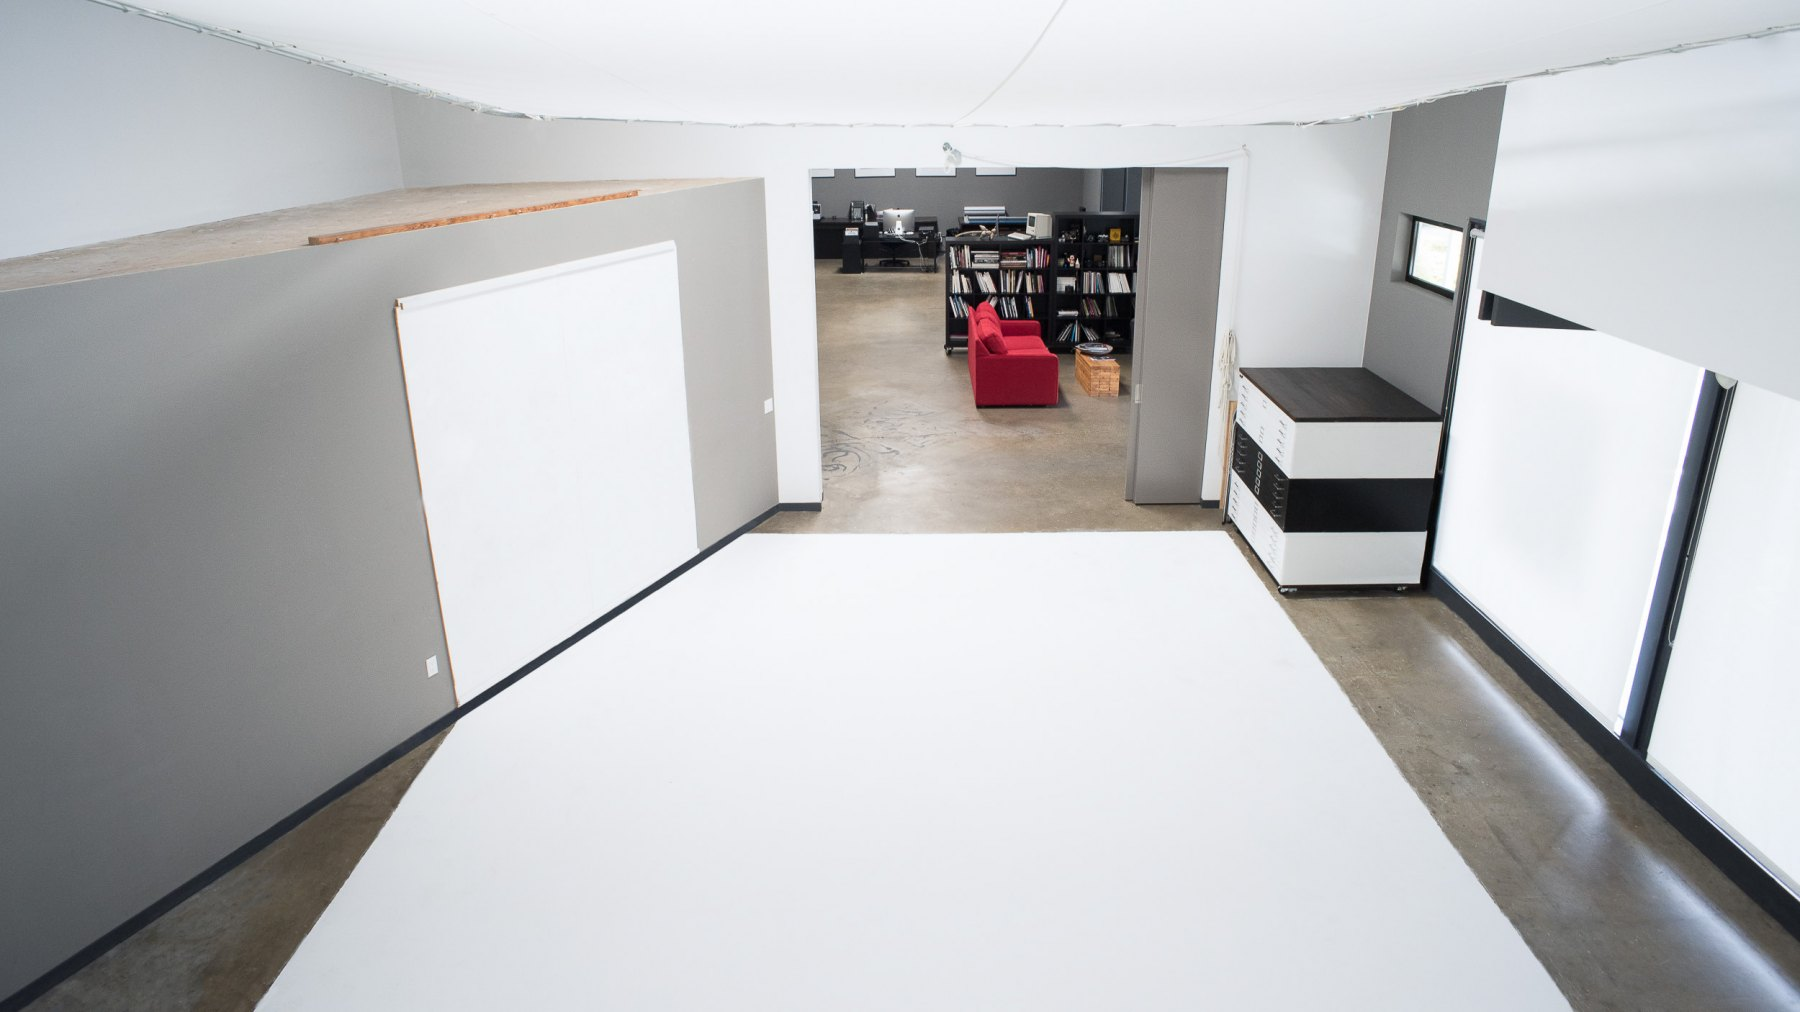 Photography Studio Rental at The Image Flow